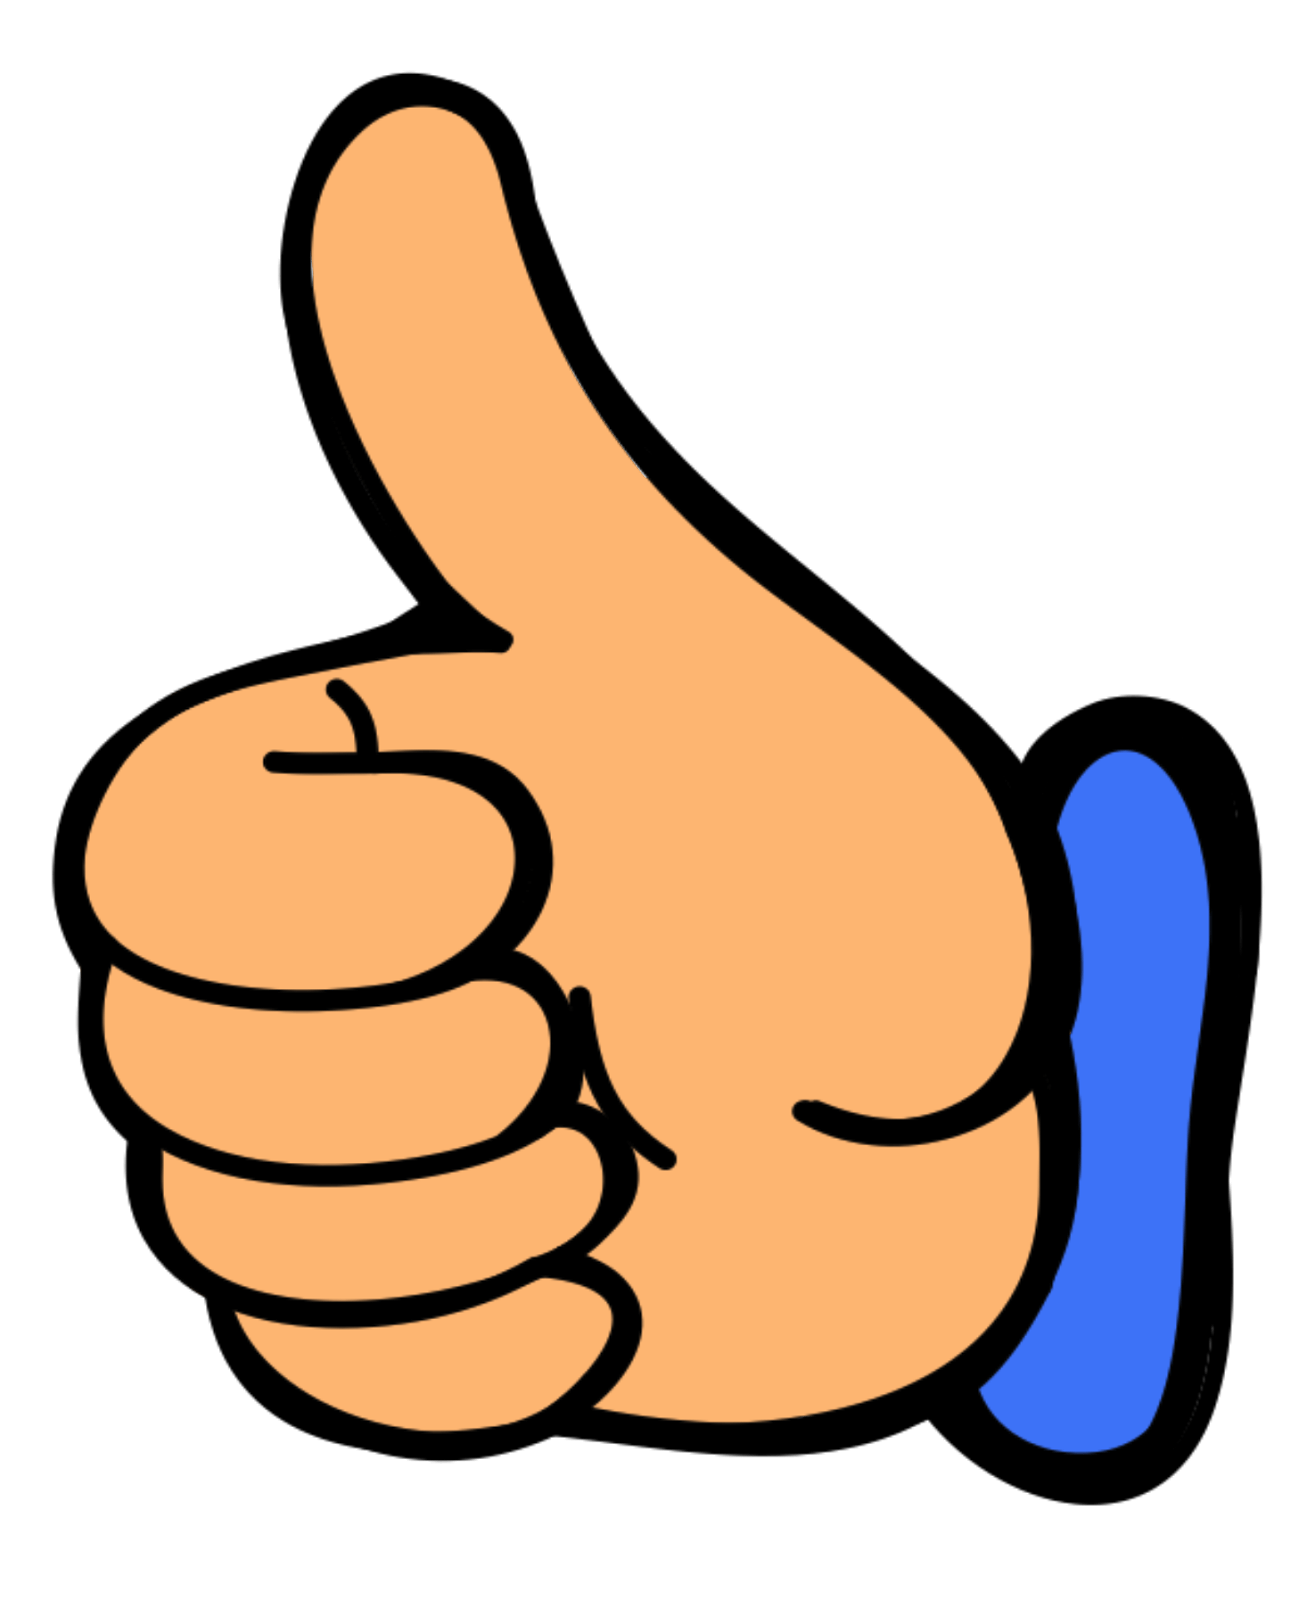 Thumbs down clipart picture free Thumbs Down Clipart - cilpart picture free